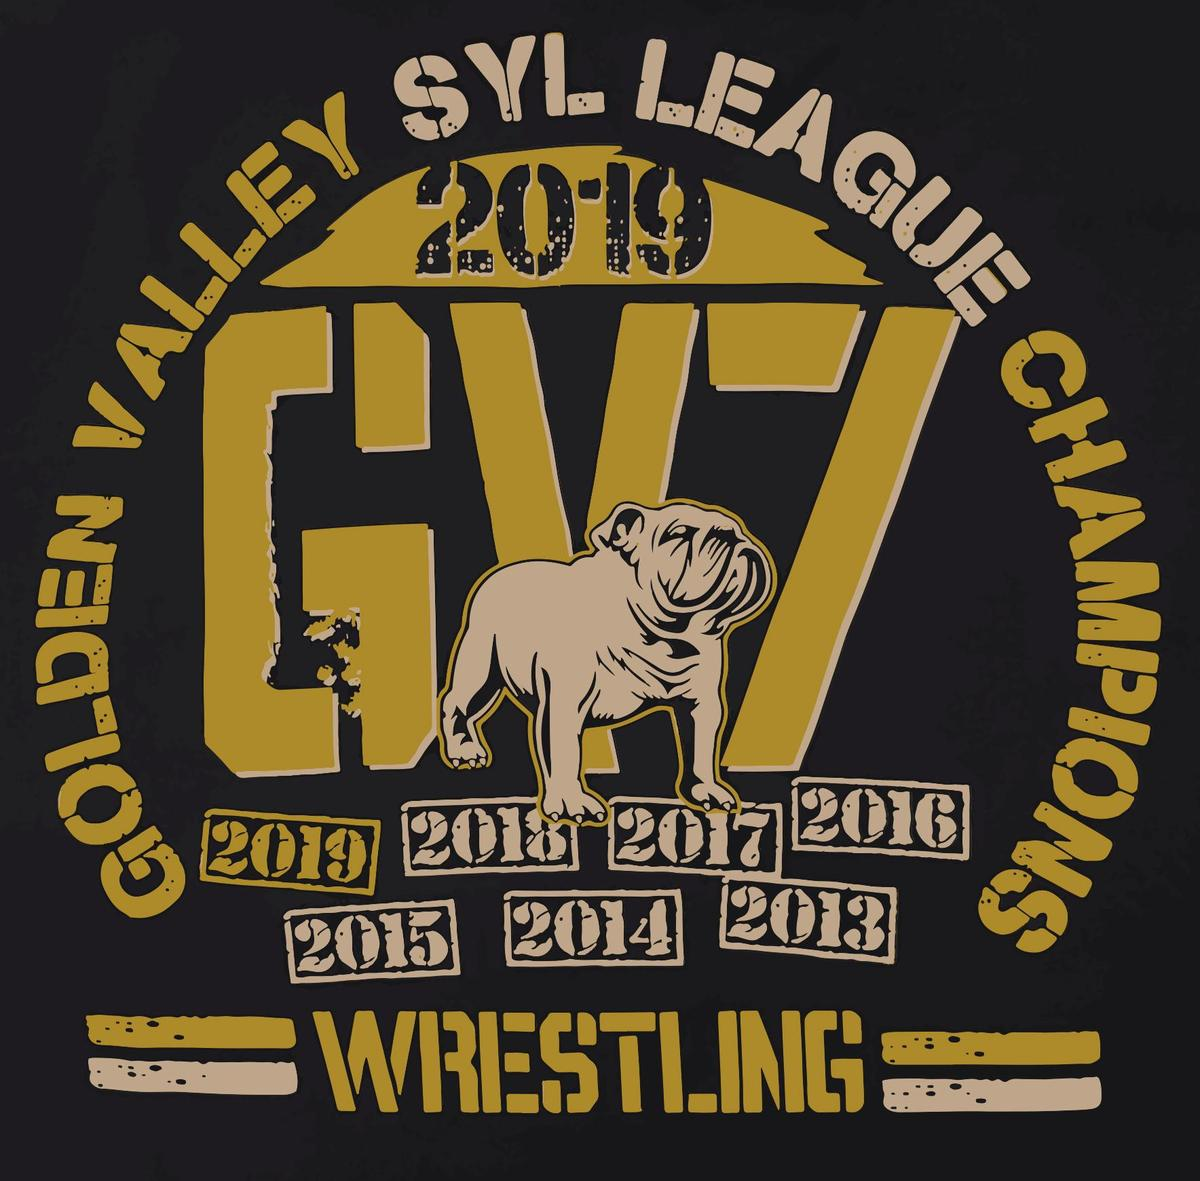 Golden Valley Wrestling SYL League Champions 7 times 2019 2018 2017 2016 2015 2014 2013